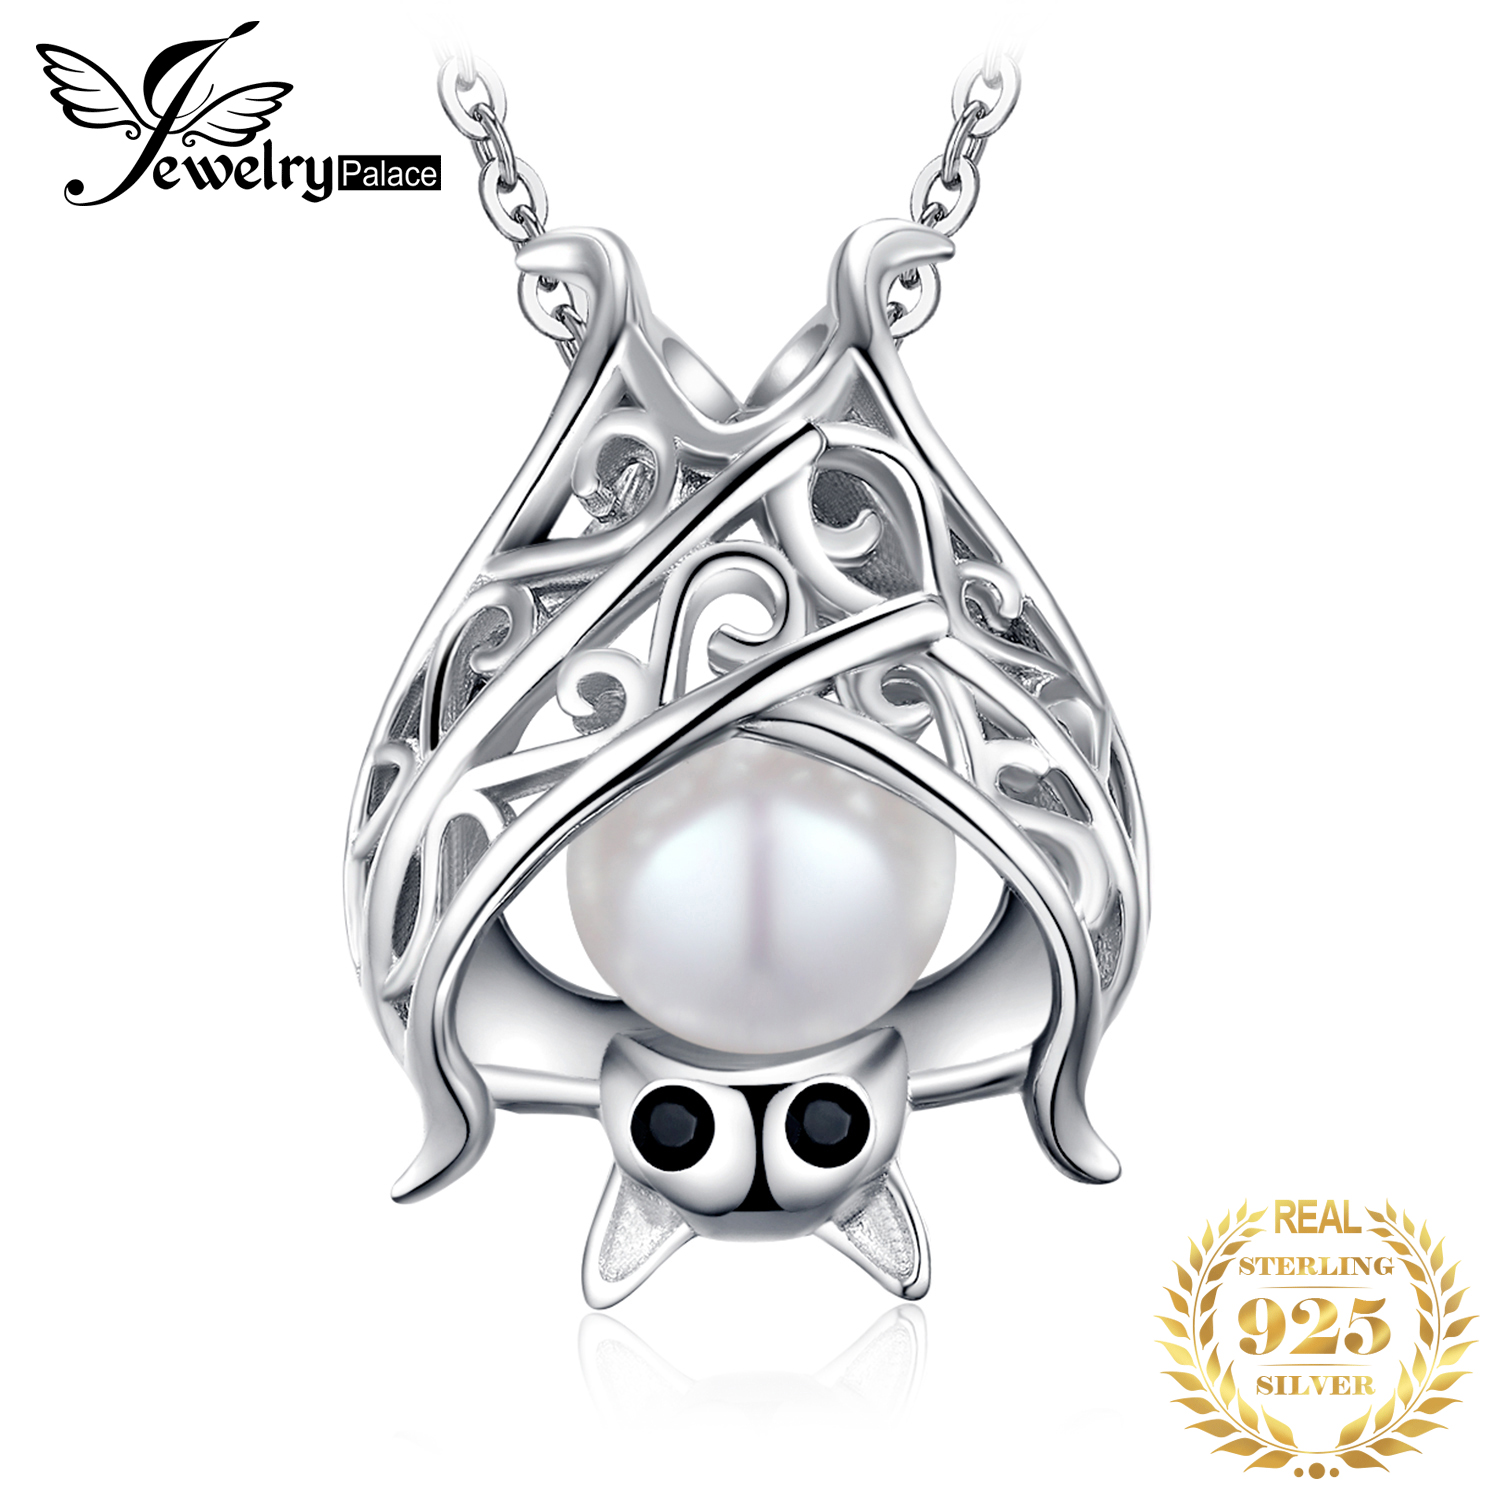 JPalace Bat Created Sapphire Pearl Pendant Necklace 925 Sterling Silver Gemstone Choker Statement Necklace Women Without Chain